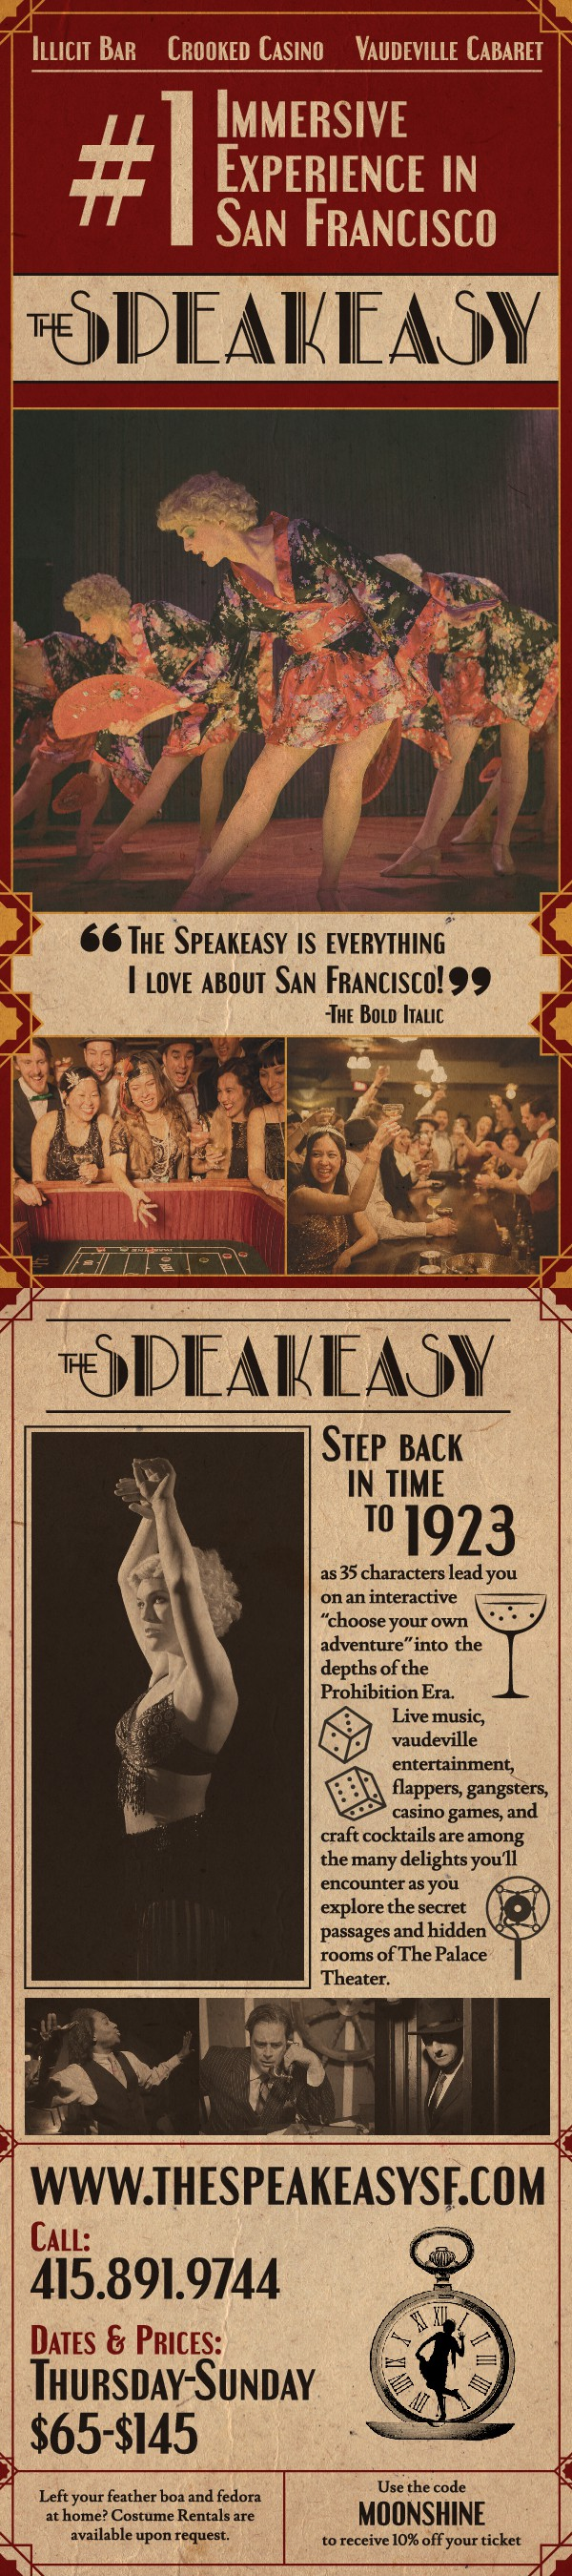 Design a 1920's secretive rack card for The Speakeasy in San Francisco